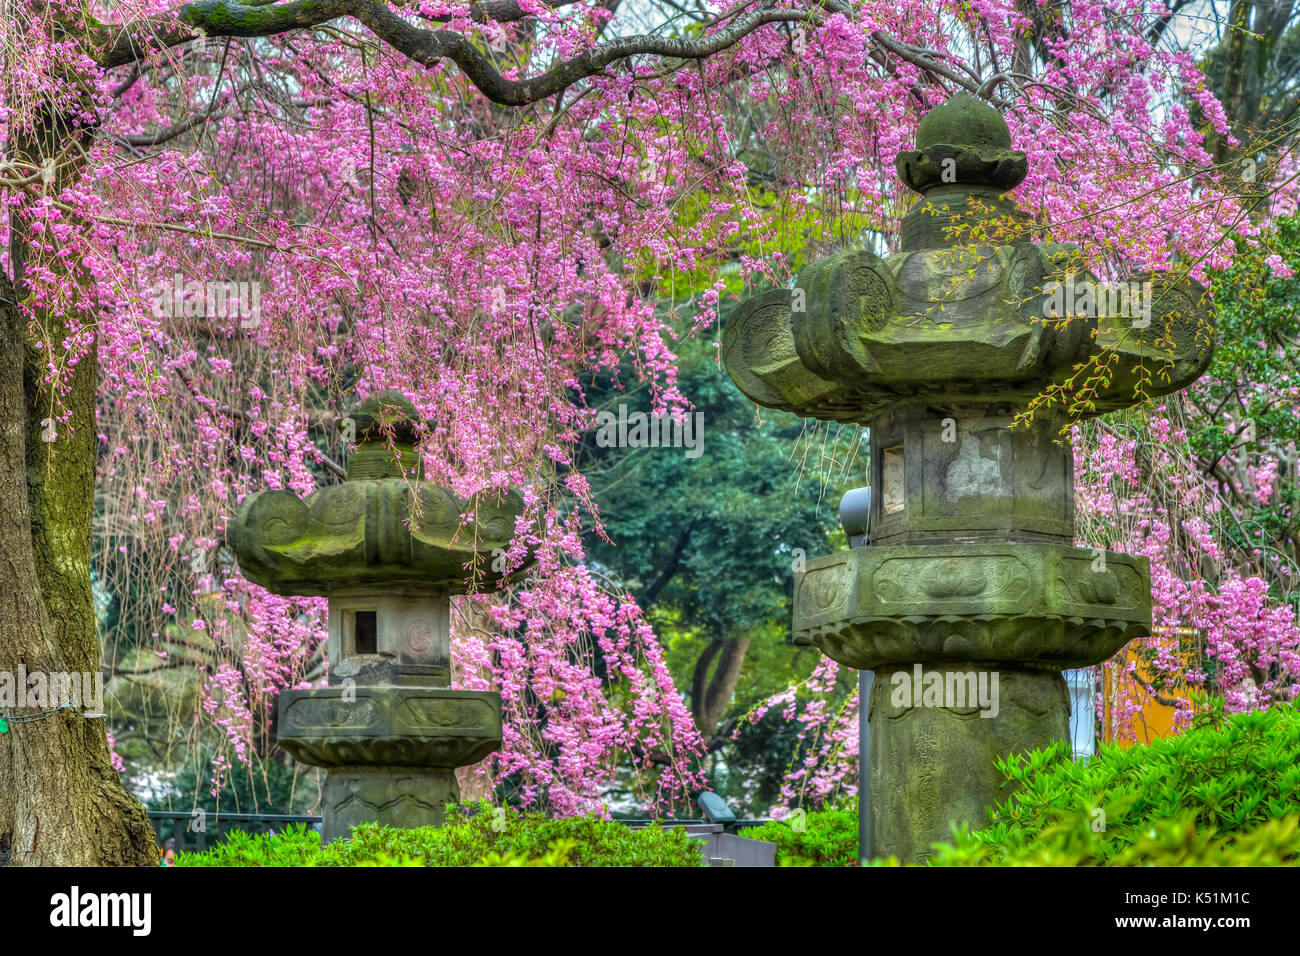 Cherry blossoms and Japanese lanterns in Ueno Onshi Park, Taito, Tokyo, Japan, Asia. - Stock Image